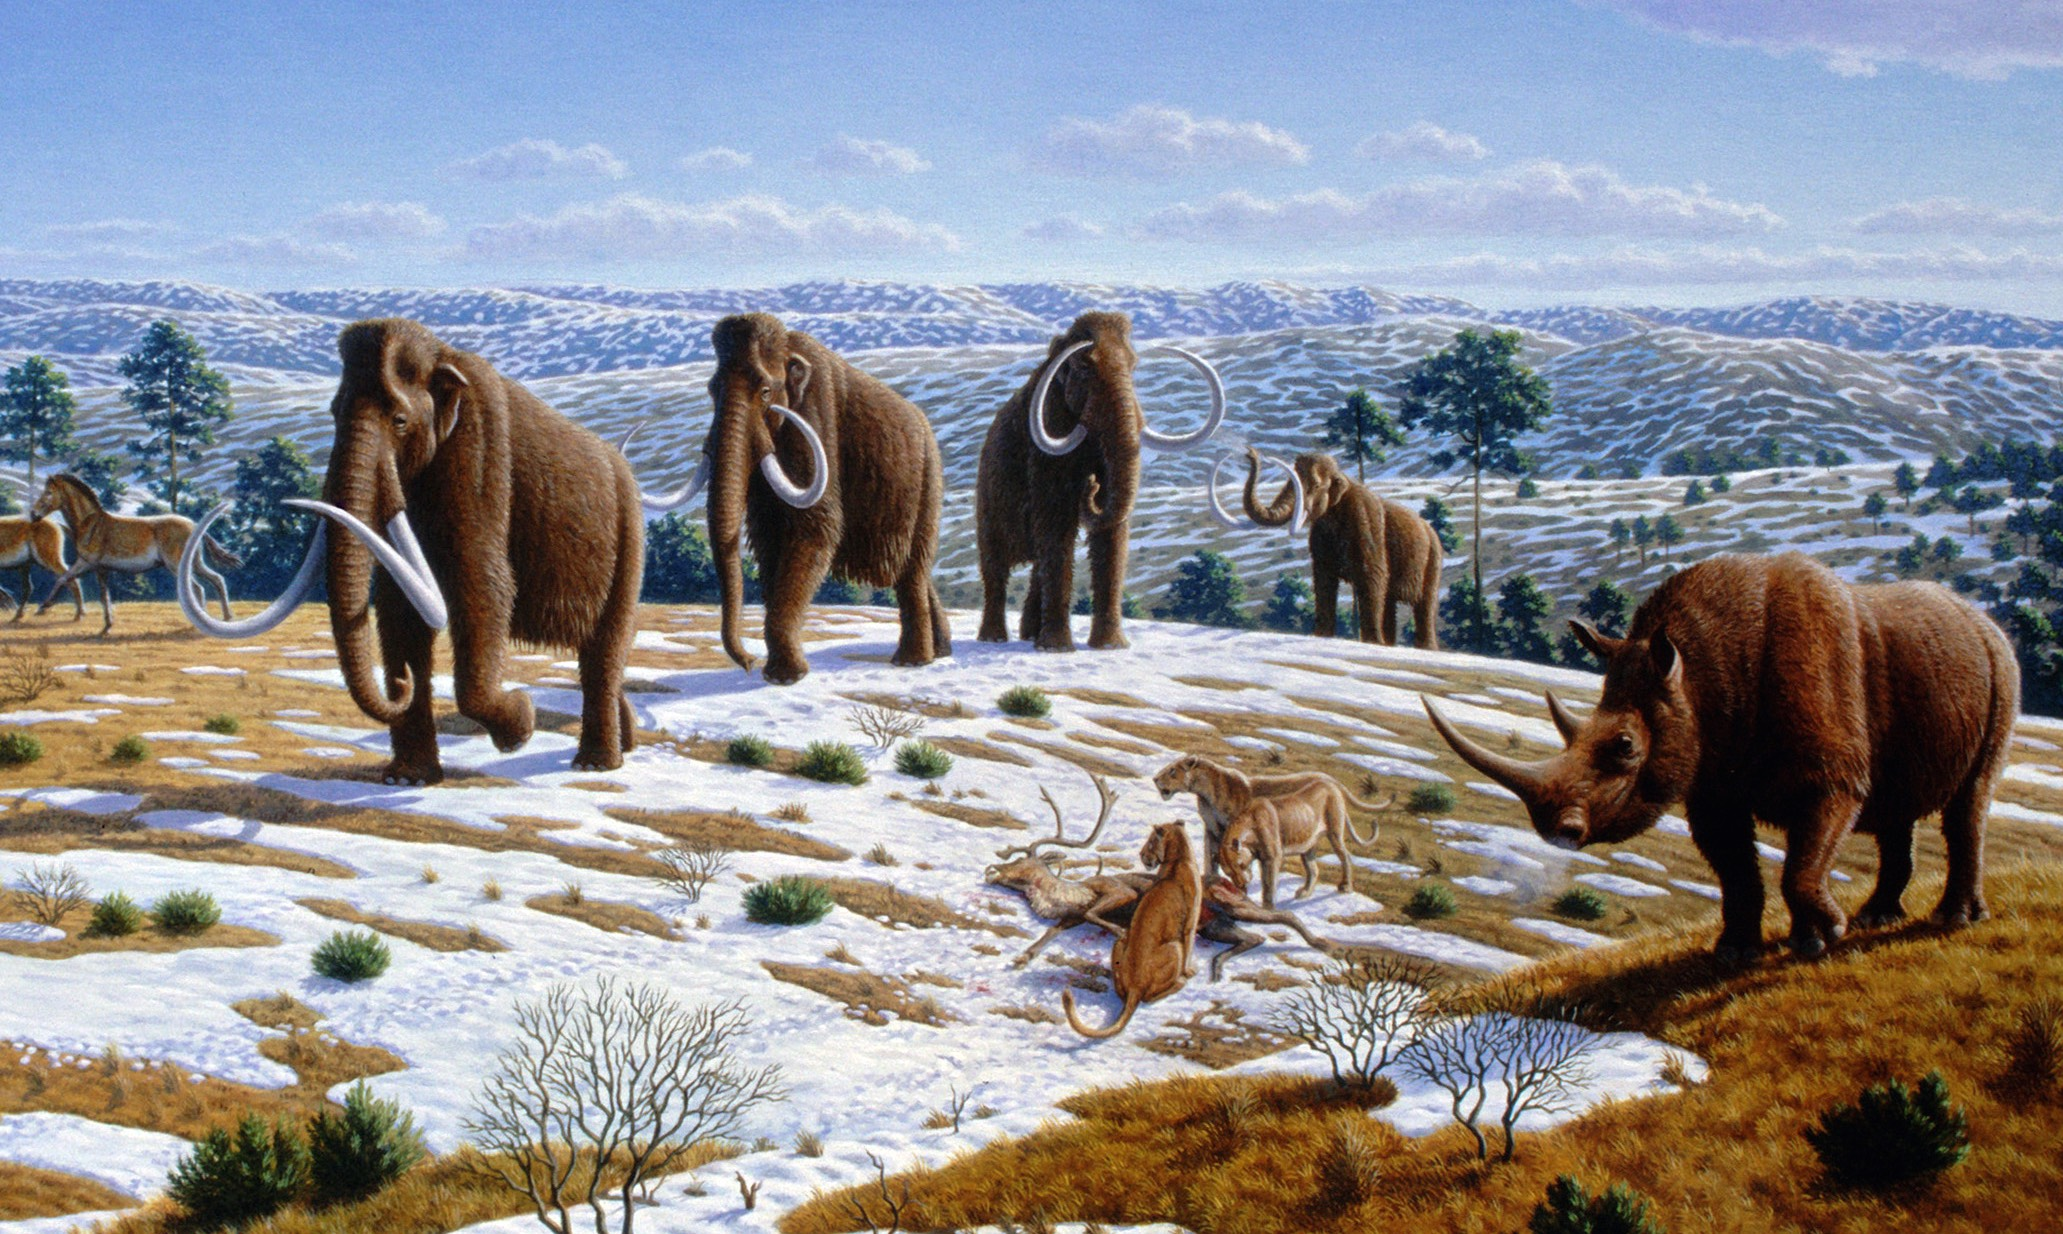 Image of Mammoths, Saber Tooth Cats and a Woolly Rhino